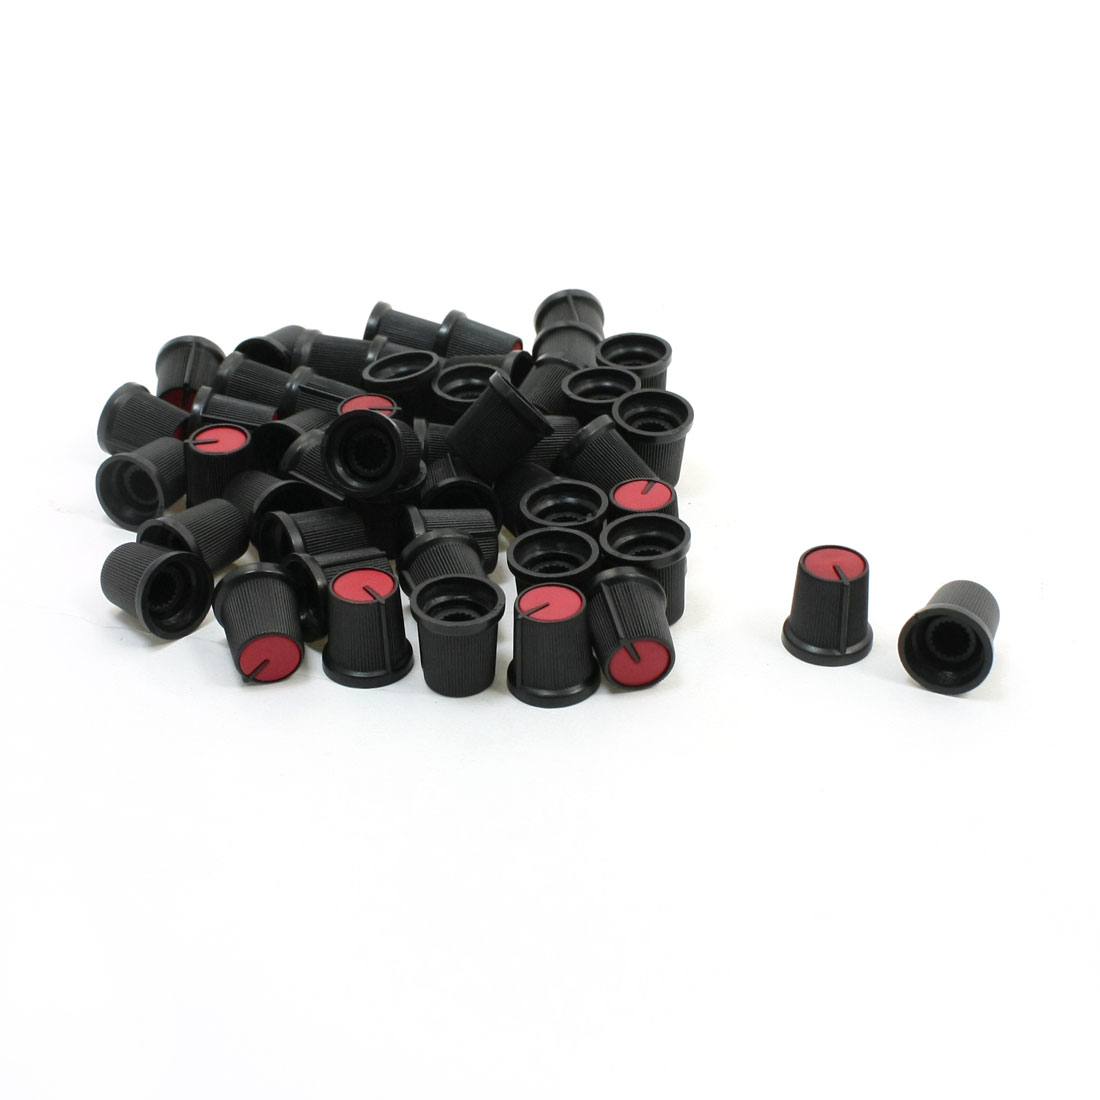 "50 Pcs 6mm 15/64"" Shaft Dia. Nonslip Potentiometer Knobs Red Black"